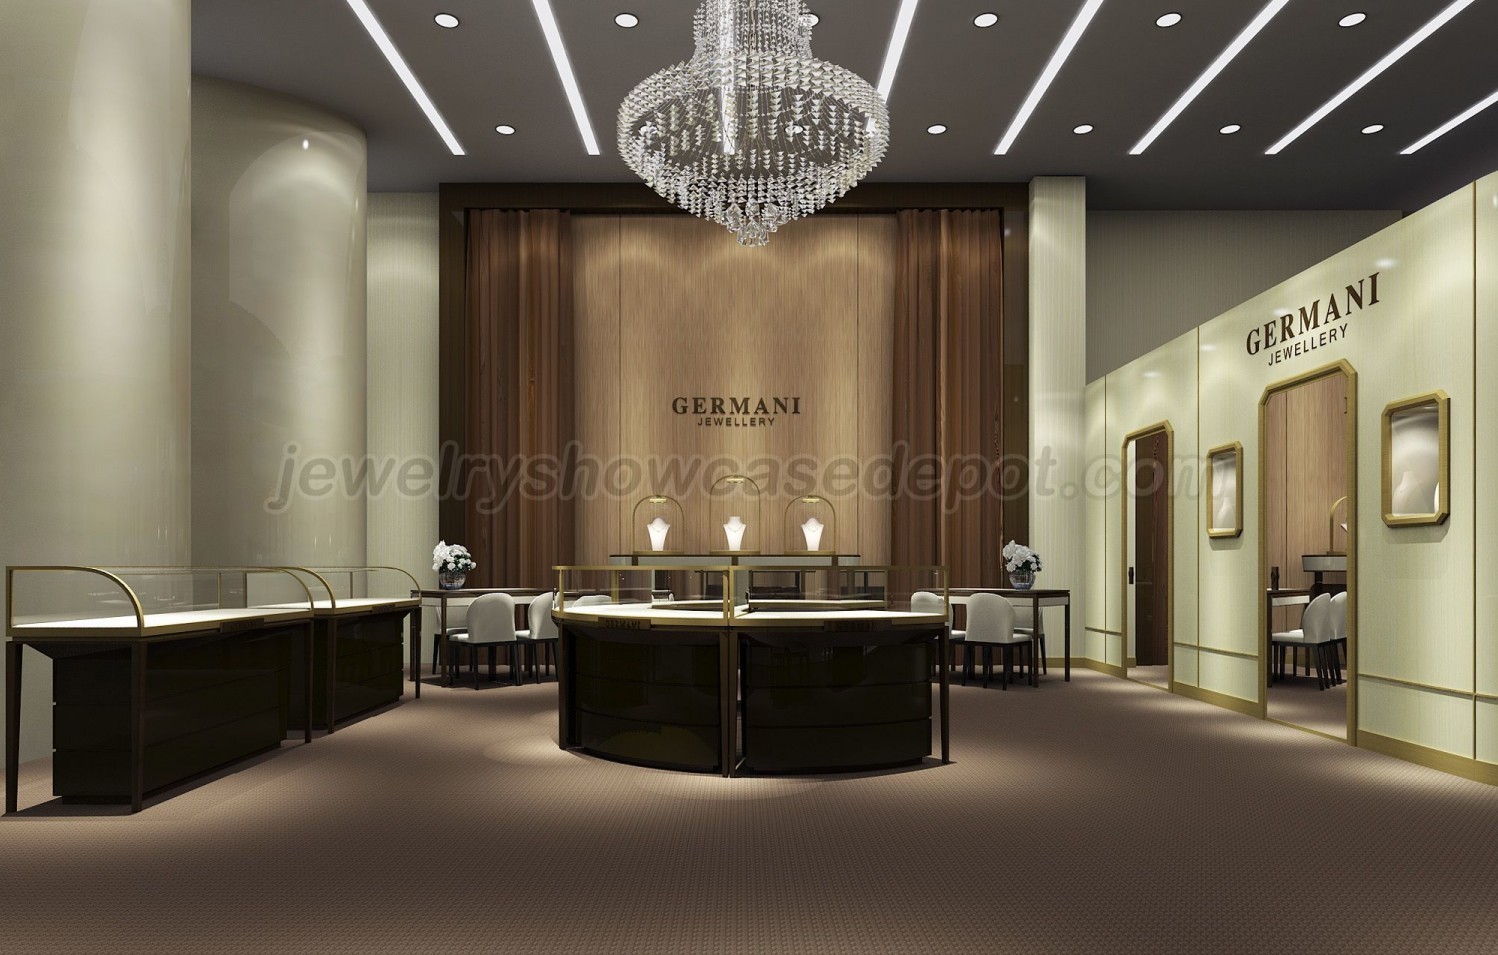 Luxury Retail Jewellery Display Cabinets Jewelry